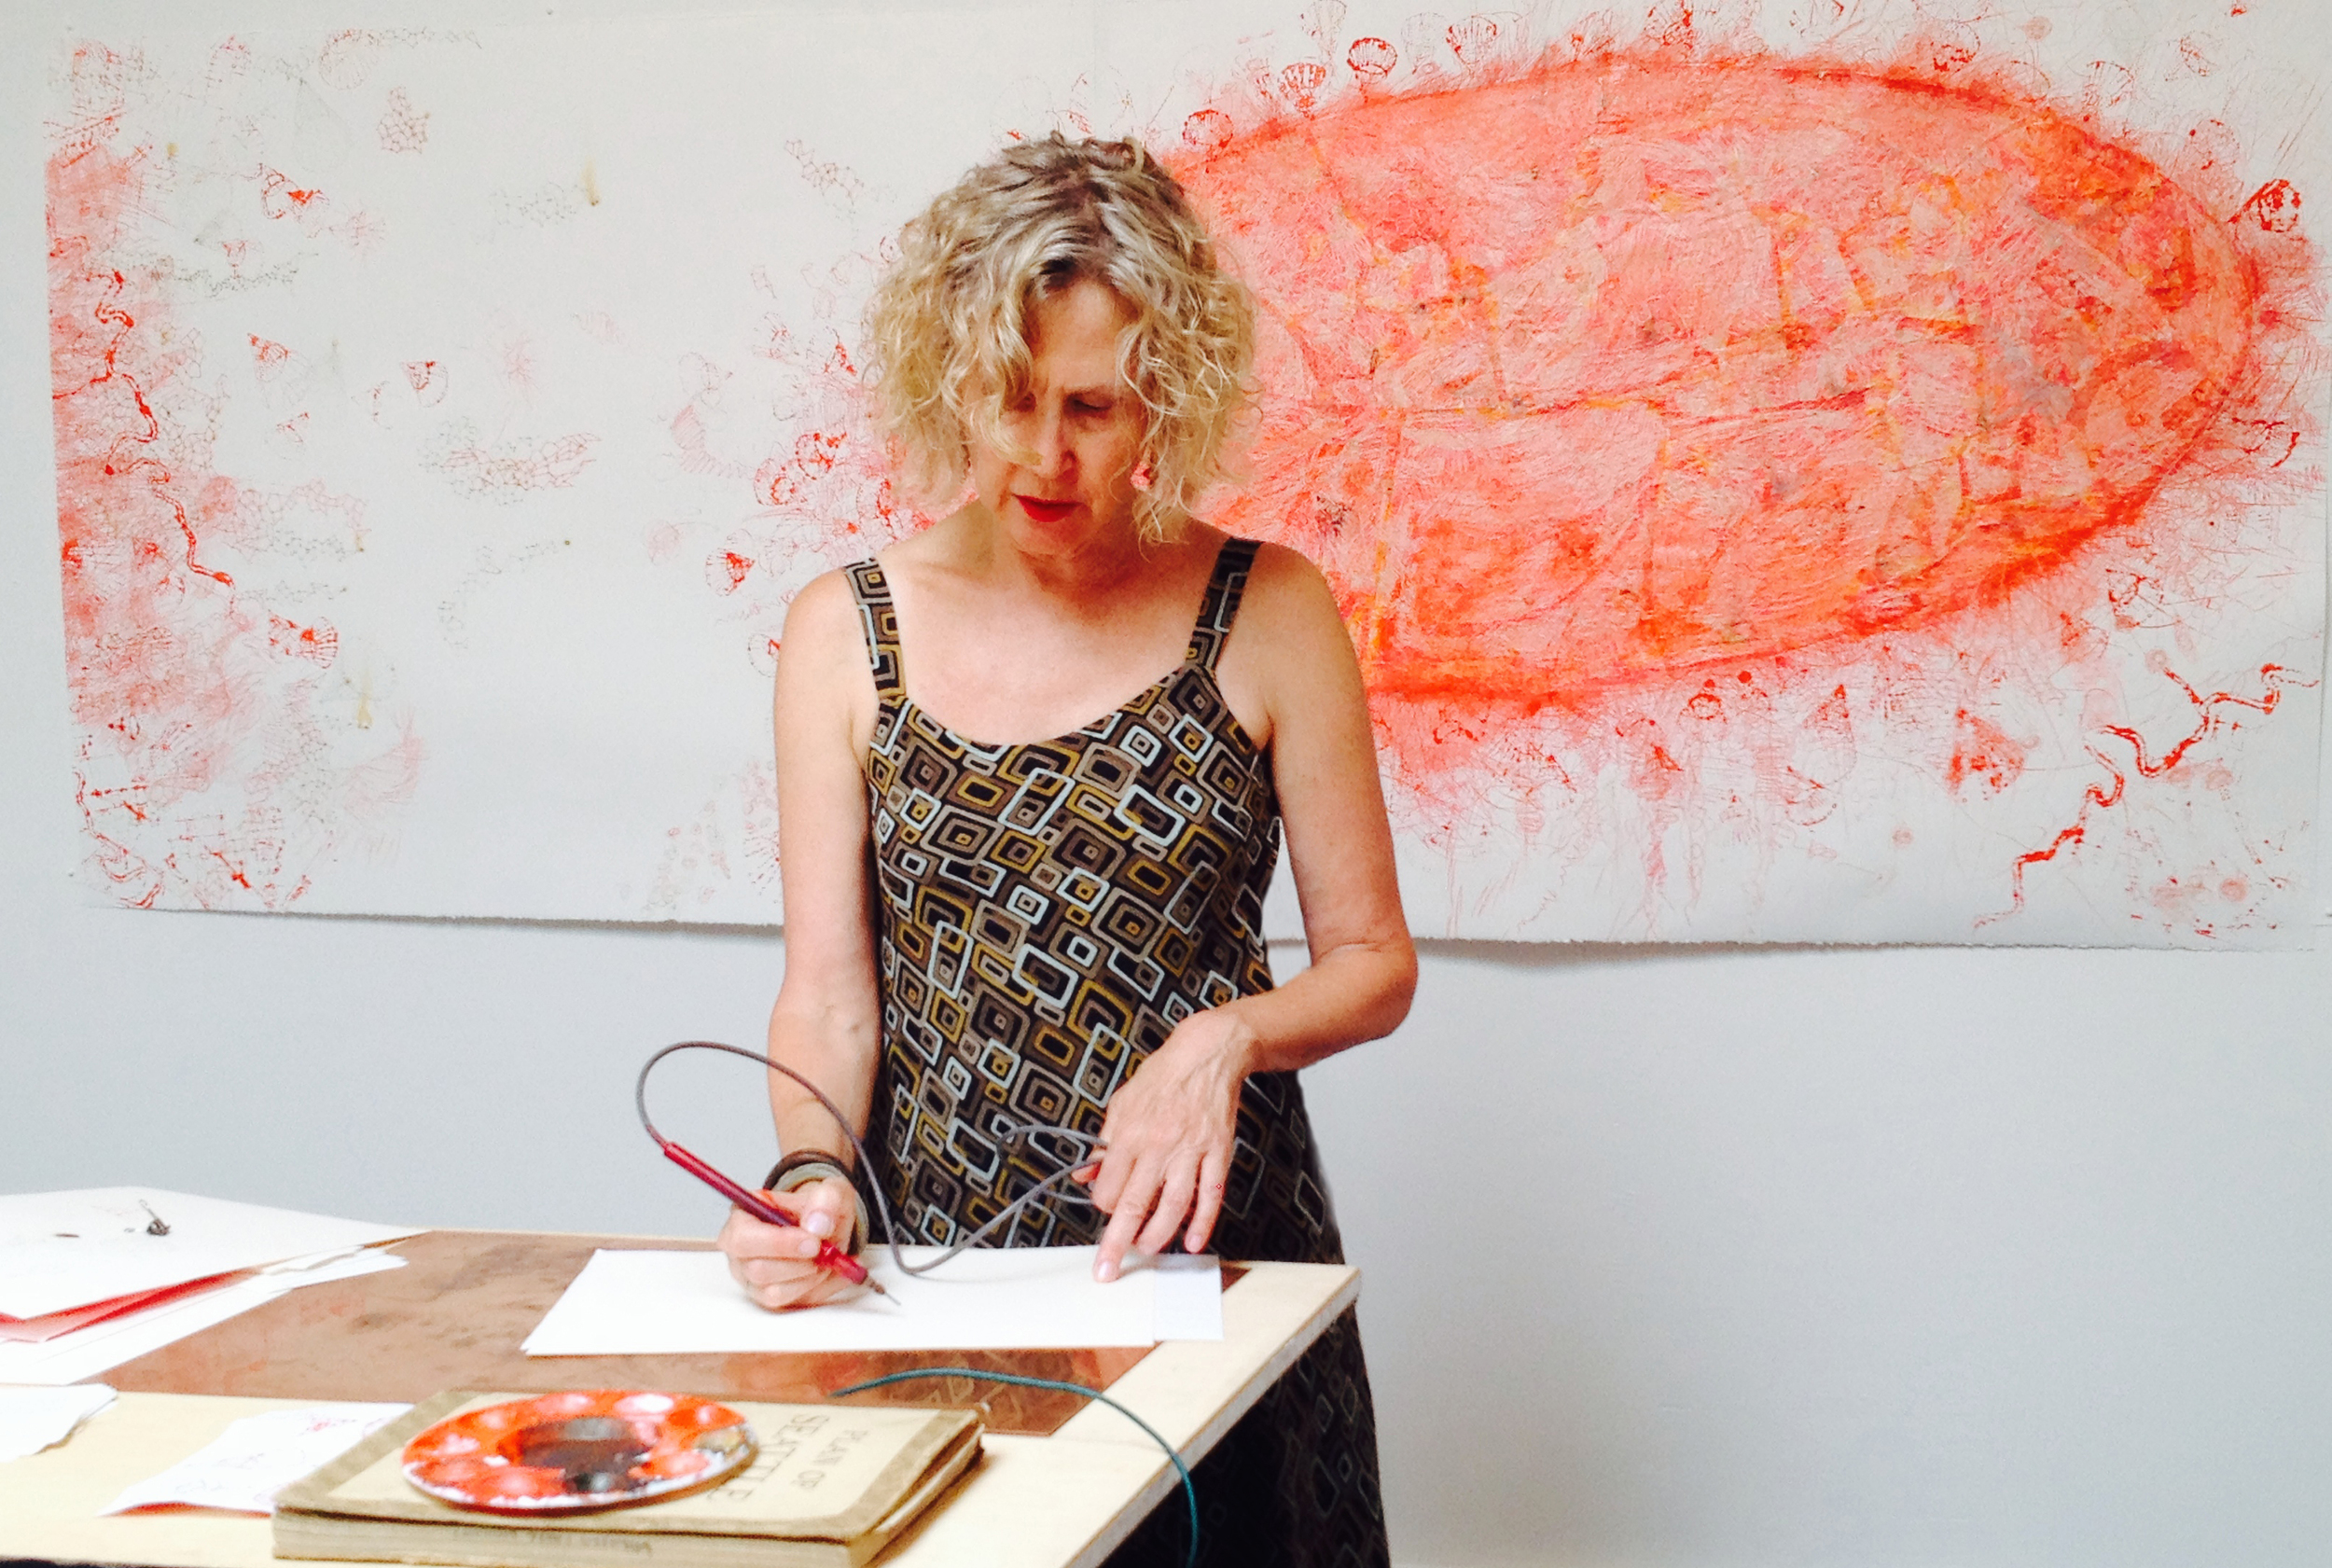 Drawing demo at LxWxH Gallery, July 2014. Curated by Cullom Gallery, Seattle.